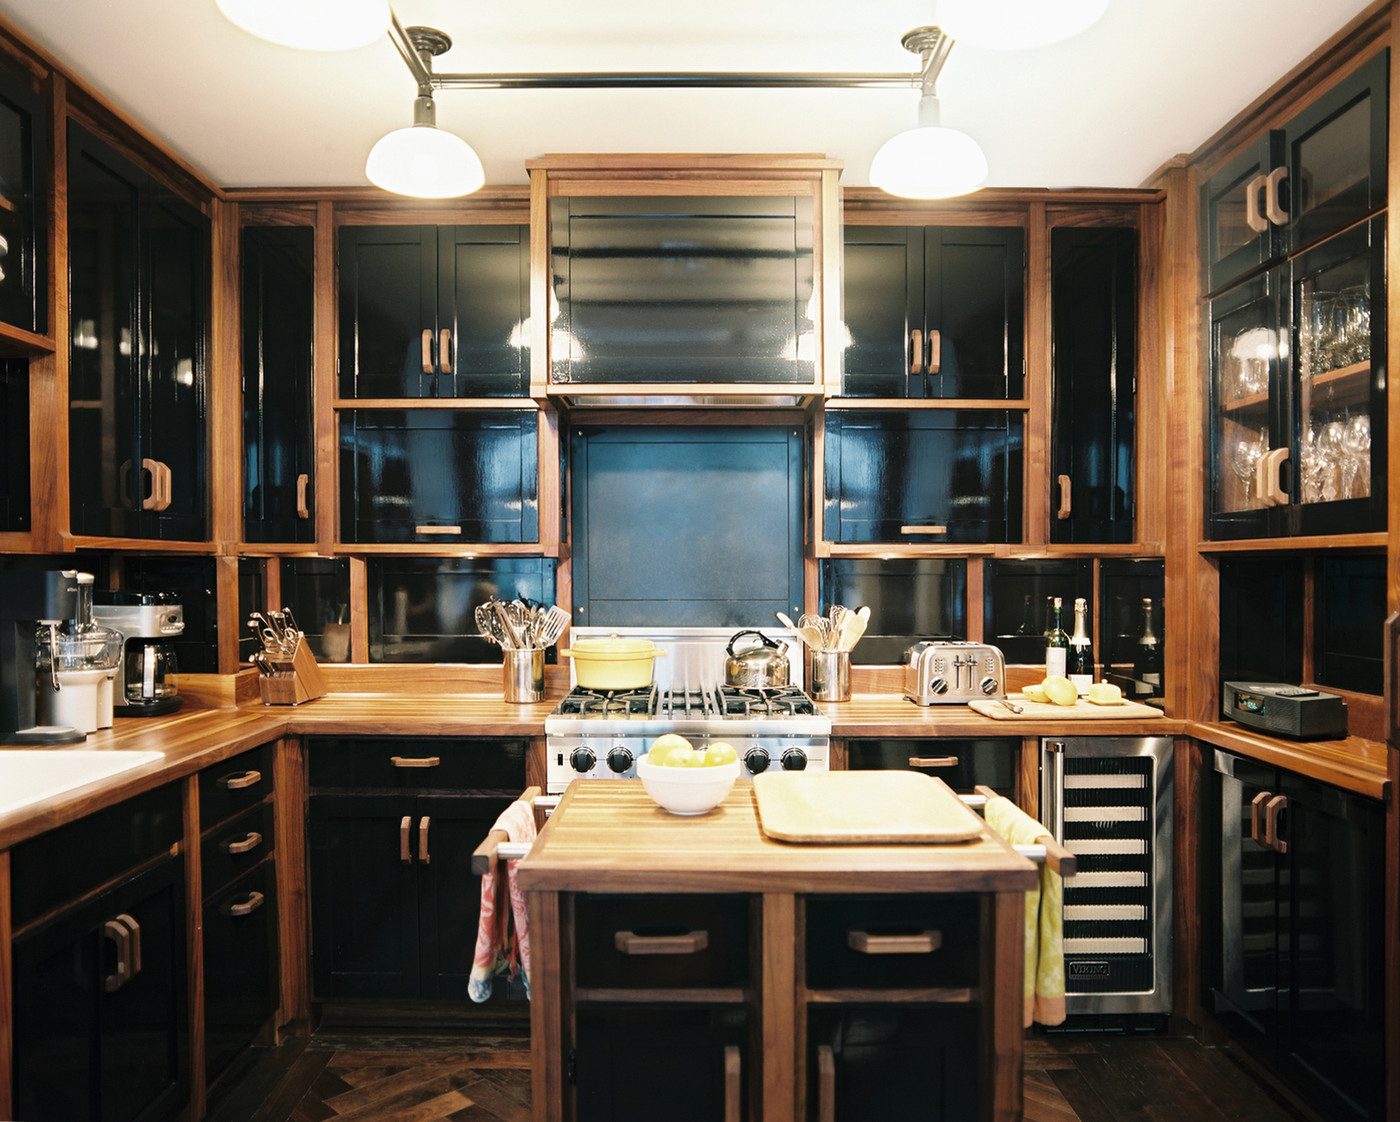 black kitchen cabinets photos 19 of 19. beautiful ideas. Home Design Ideas